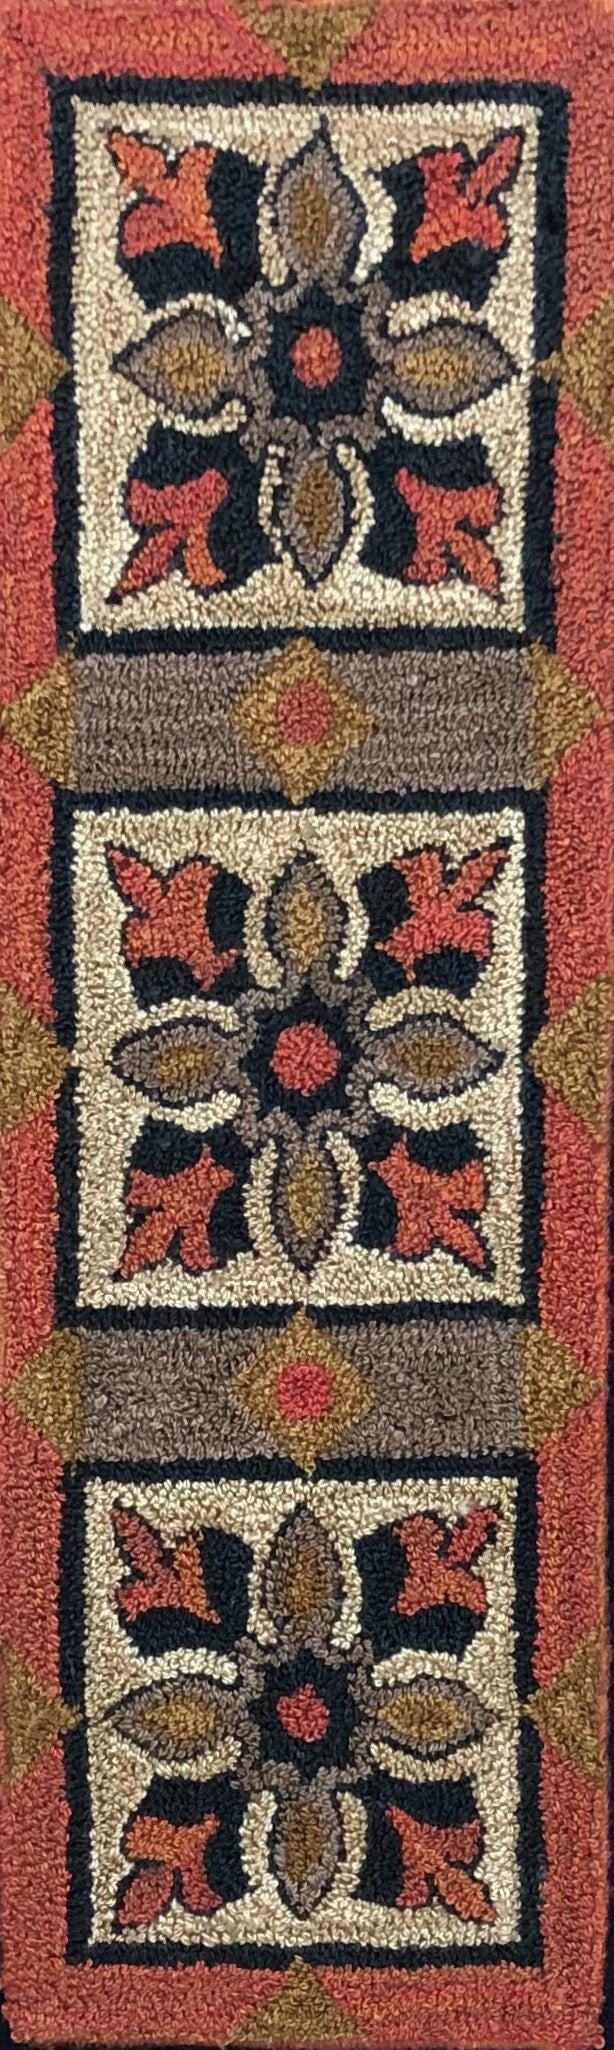 Large Trio-Paper Rug Hooking Pattern-(PAPER PATTERN ONLY)